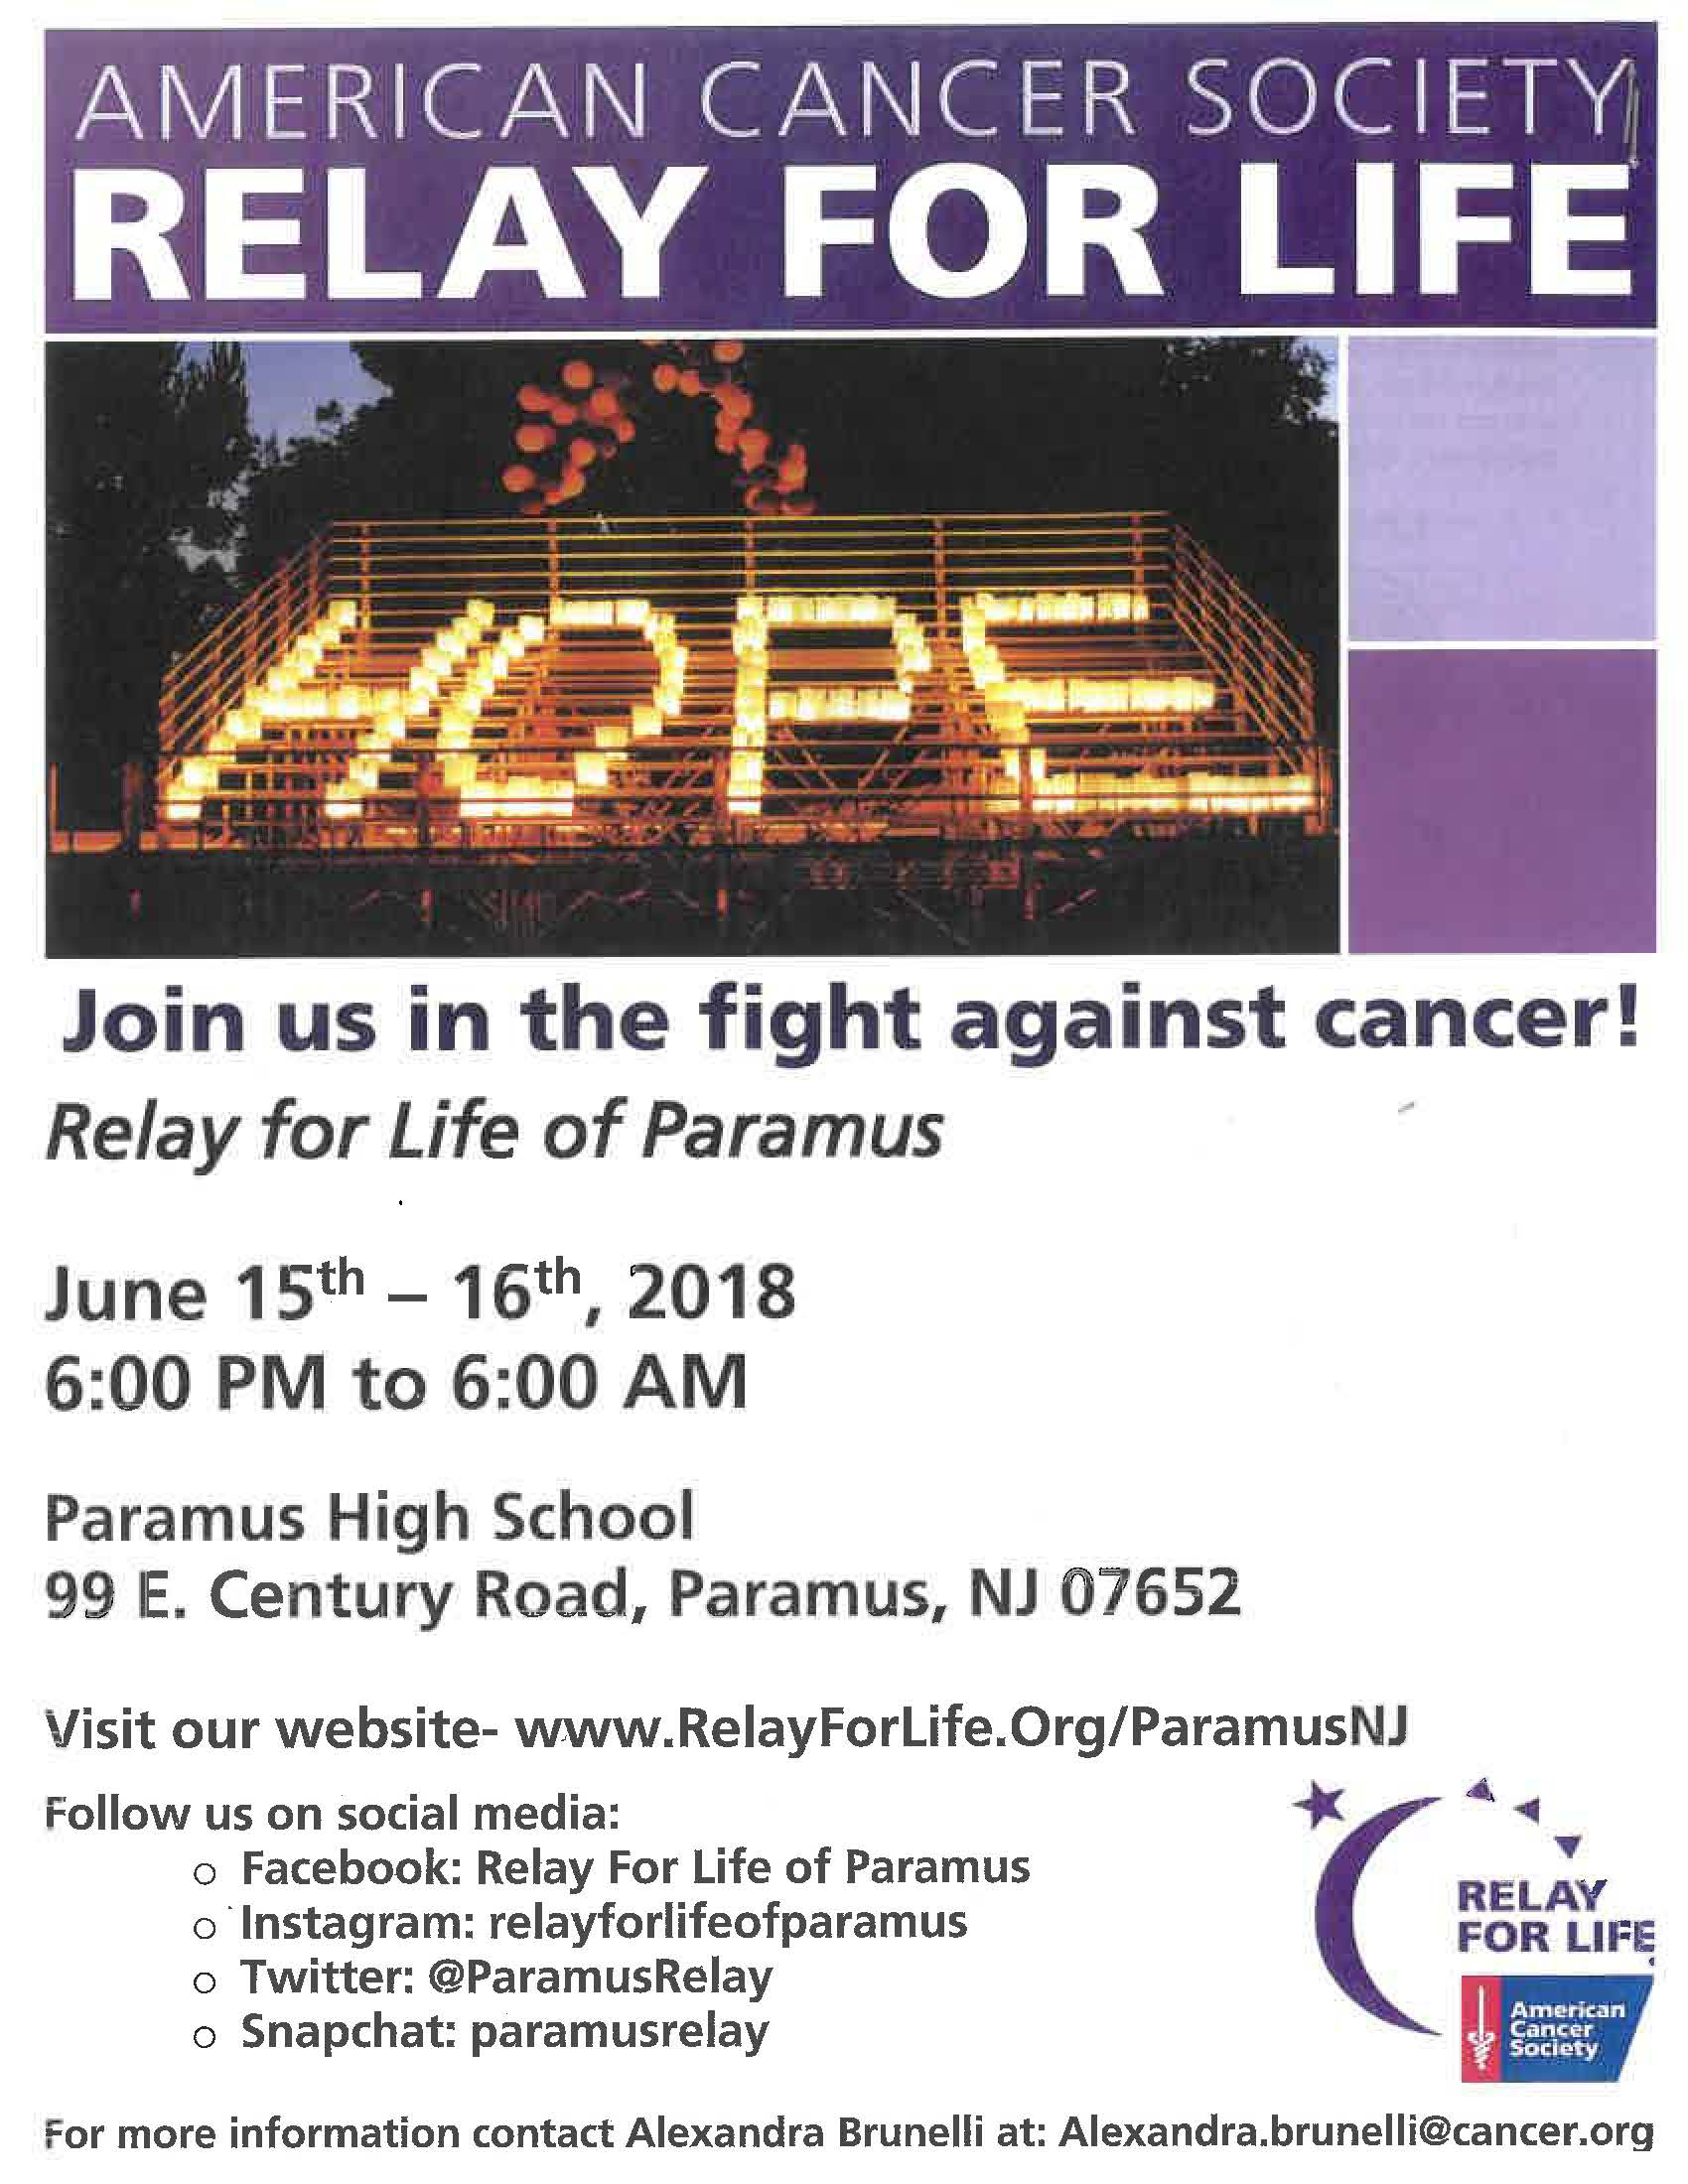 2018 Relay for Life